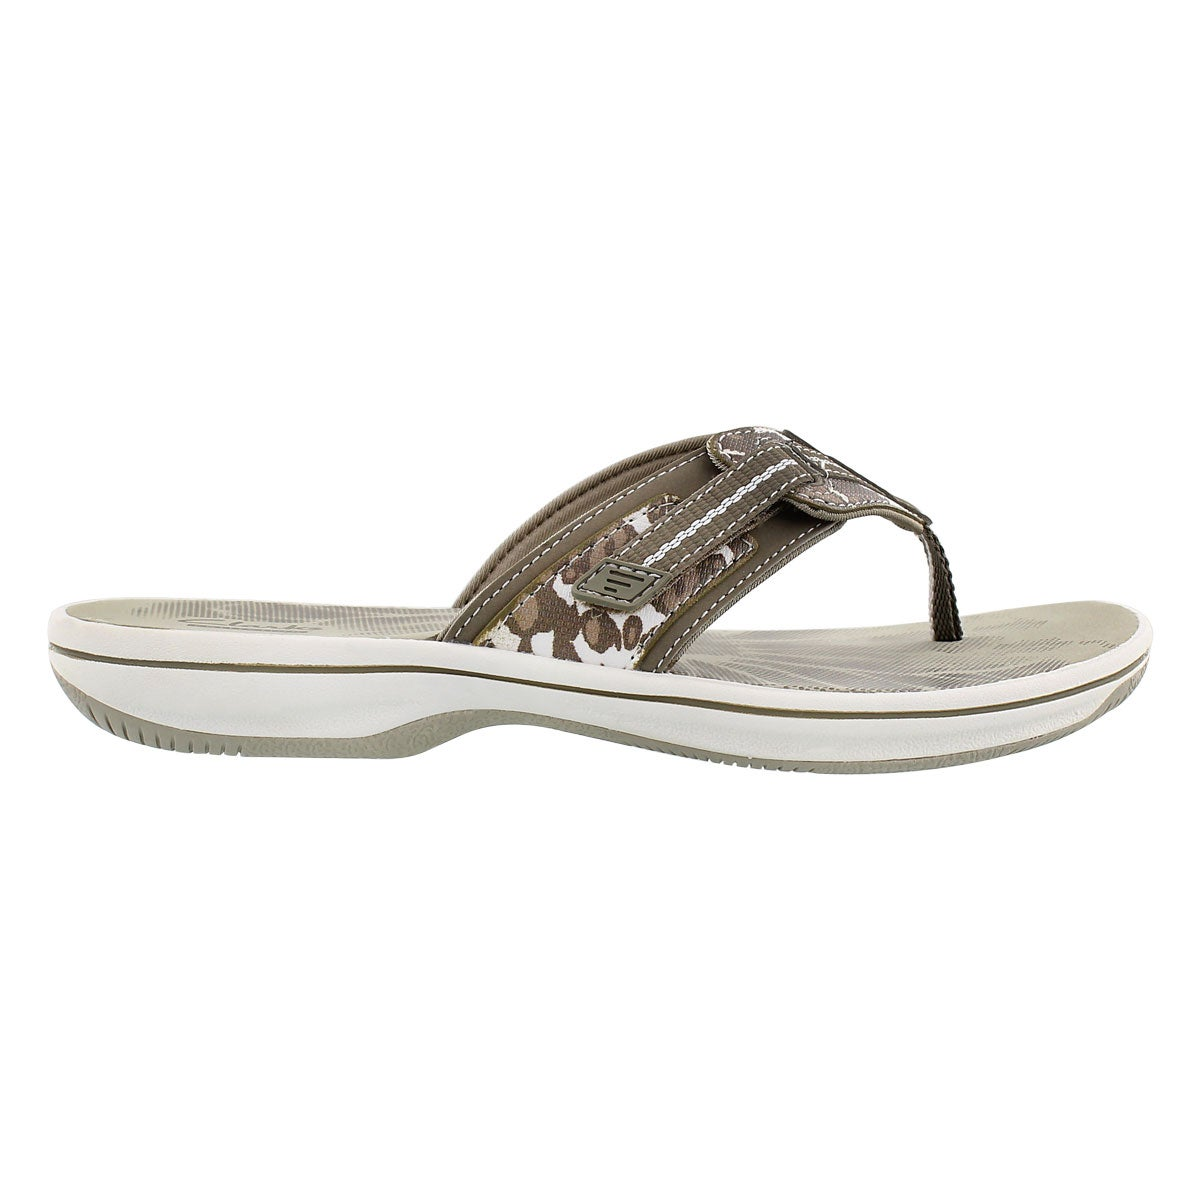 Lds Brinkley Jazz sage camo thong sandal